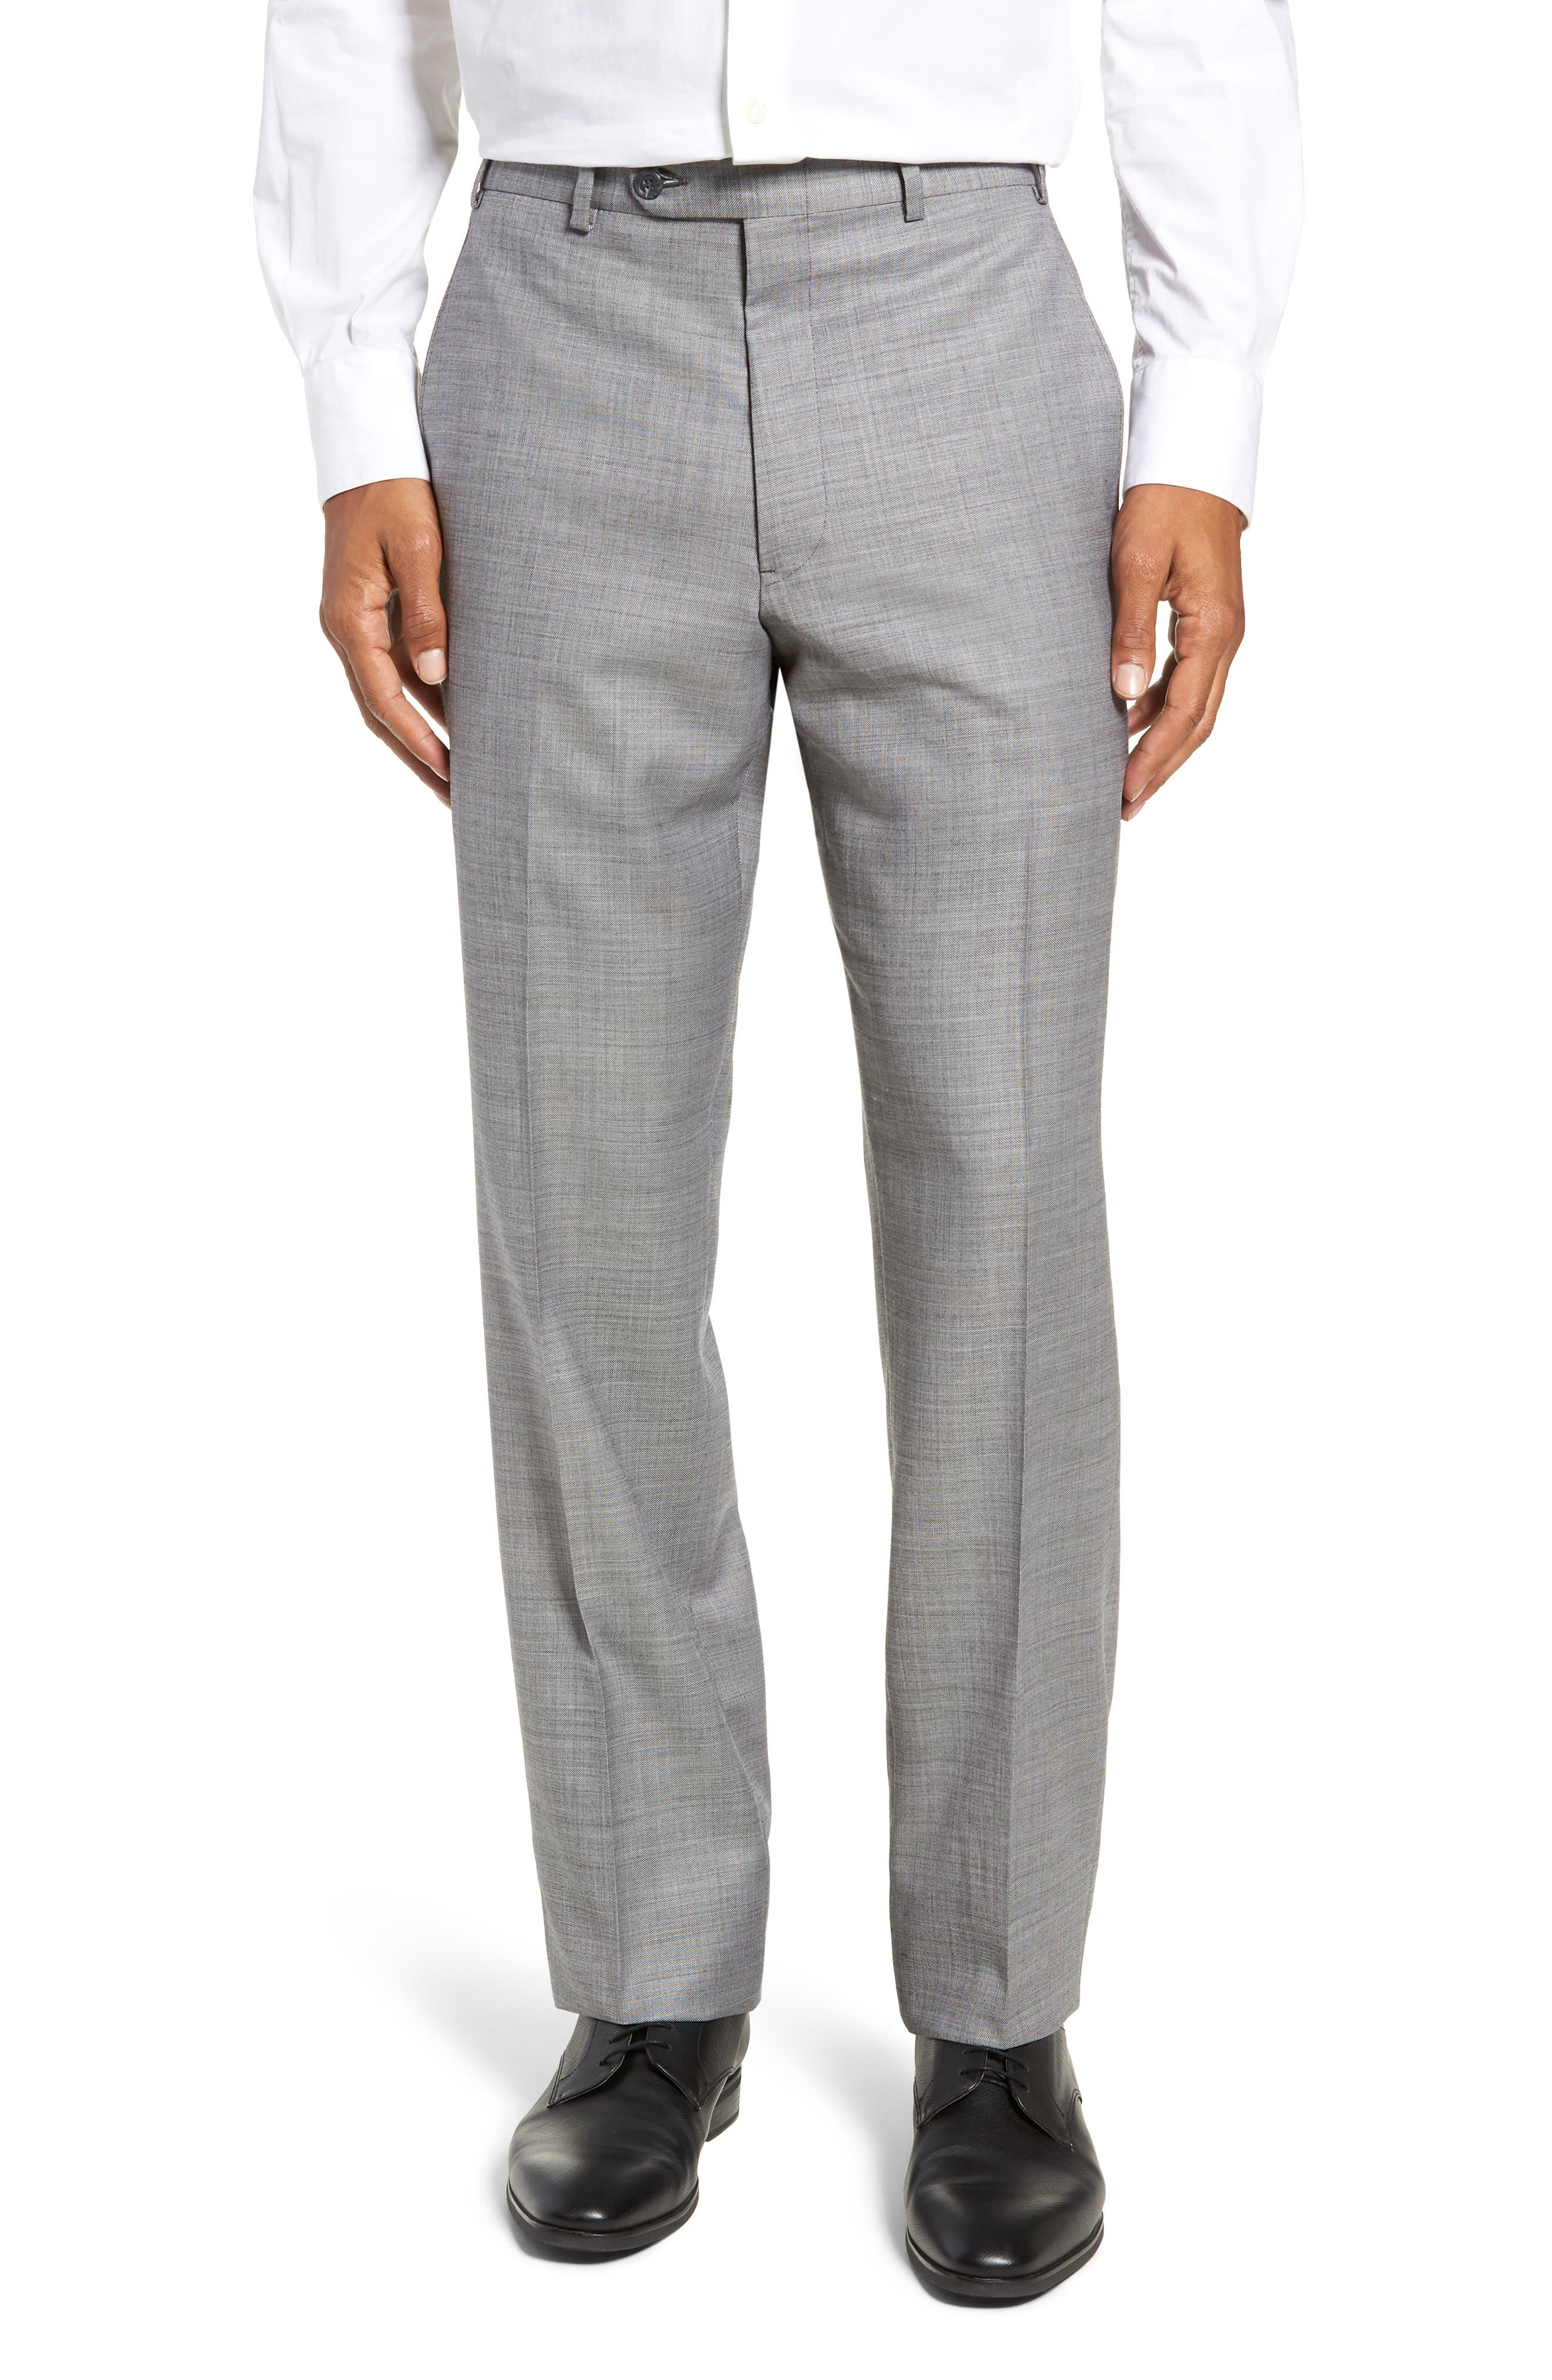 JOHN W. NORDSTROM<SUP>®</SUP>, Traditional Fit Flat Front Solid Wool Trousers, Main thumbnail 1, color, GREY PEARL